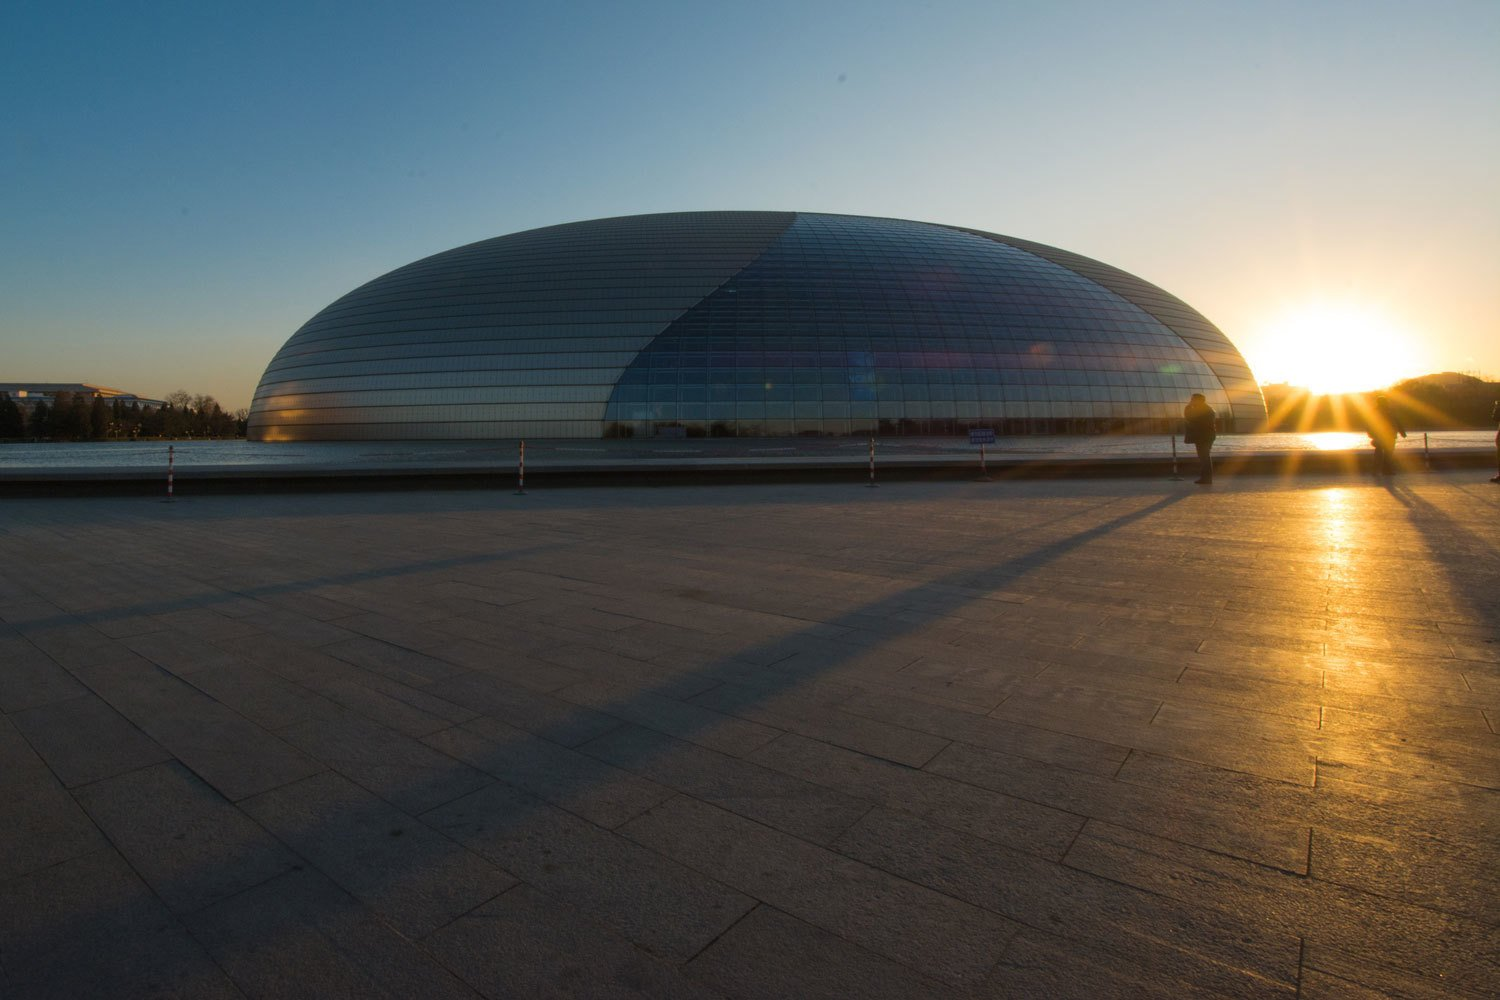 This titanium and glass dome-shaped National Centre for the Performing Arts Opera House was a point of contention when it debuted in late 2007 because many people felt its egg-like structure, designed by French architect Paul Andreu, disrupted the feng shui of the capital. Check their schedule to catch touring orchestras, ballet troupes, and of course, Peking opera.  Photo 10 of 10 in 10 Places to Visit in Beijing